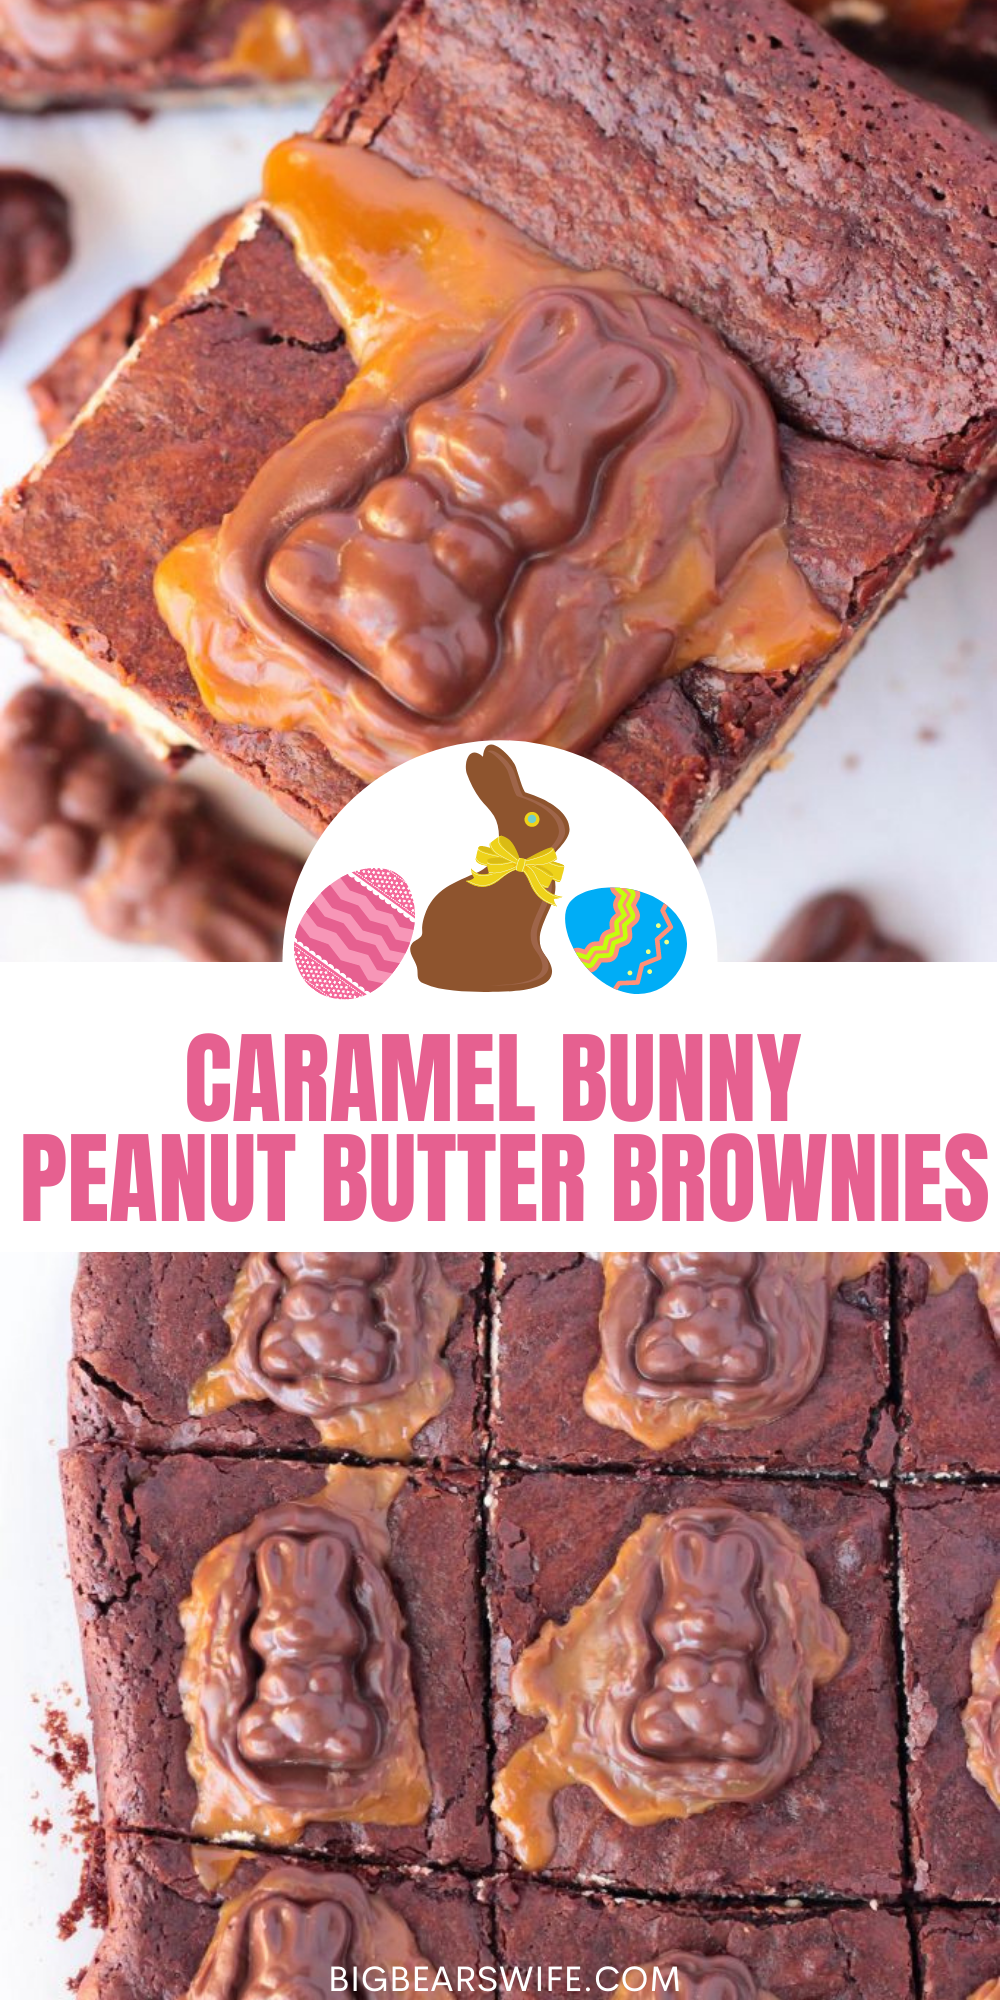 Peanut Butter Stuffed Chocolate Brownies with a chocolate caramel bunny melted on top, what's not to love? These Caramel Bunny Peanut Butter Brownies are the perfect addition to any Easter dessert spread!